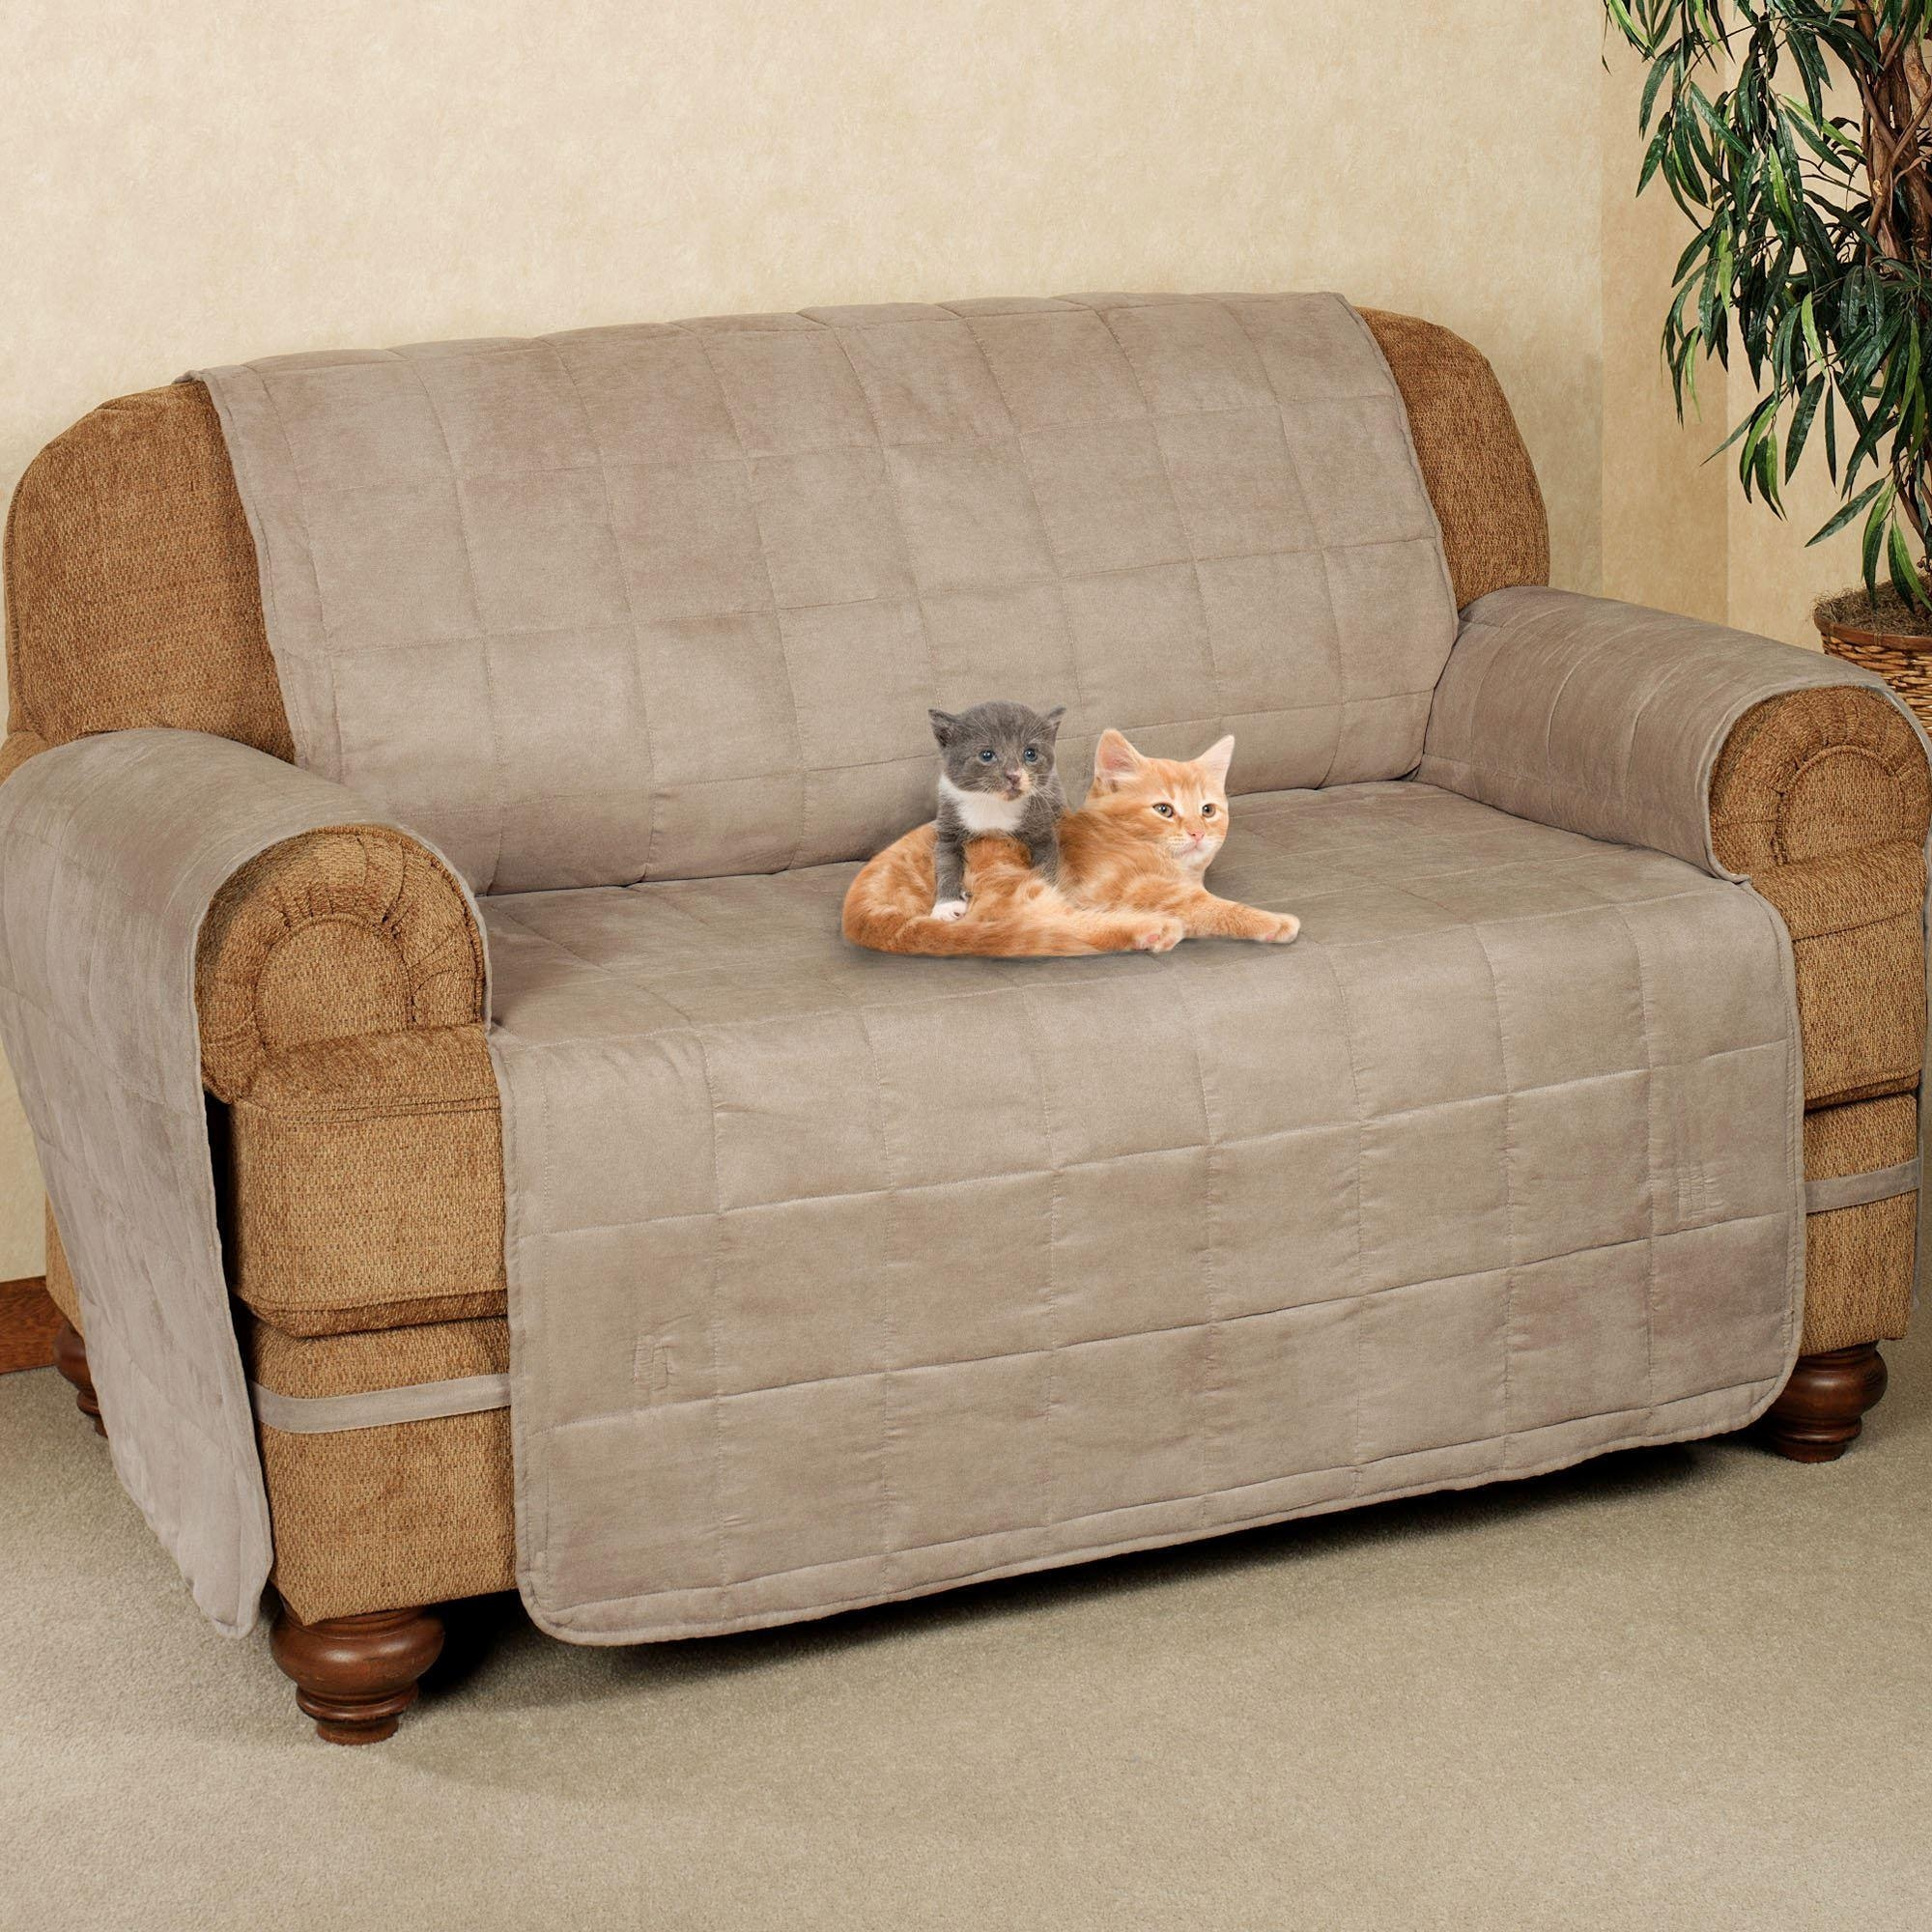 Best Pet Friendly Couch Covers